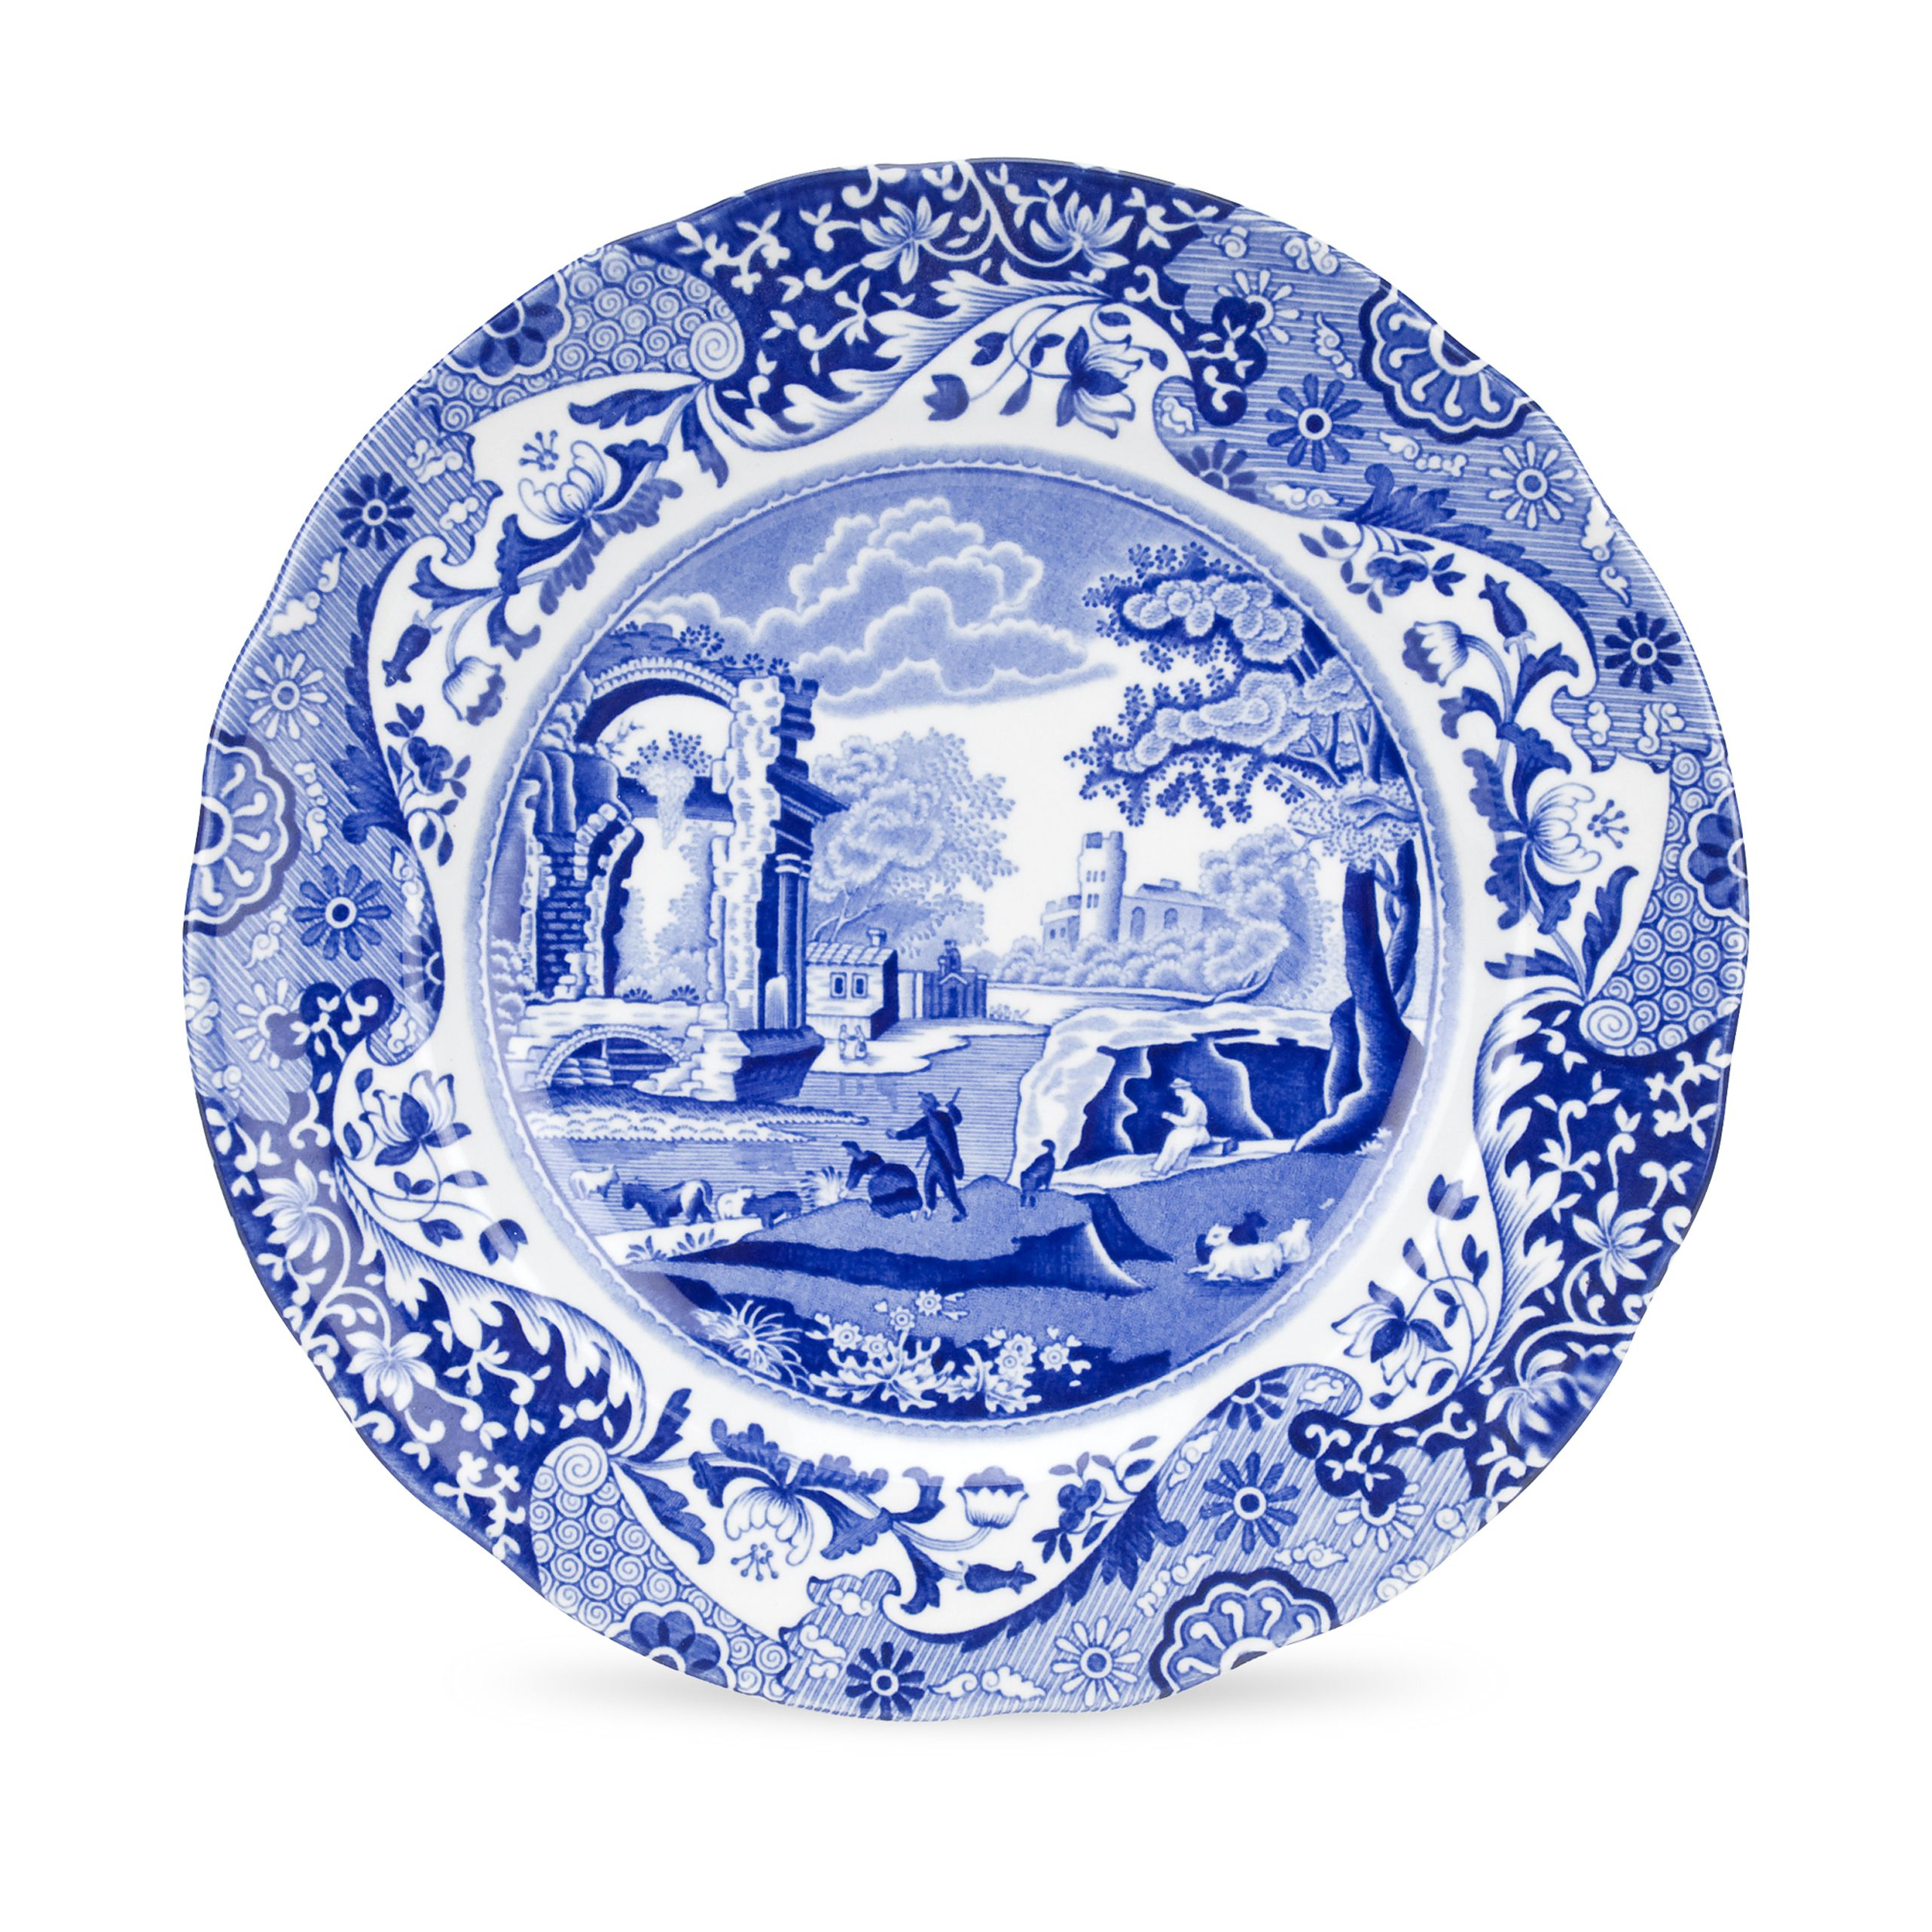 Spode China Patterns Best Decorating Design